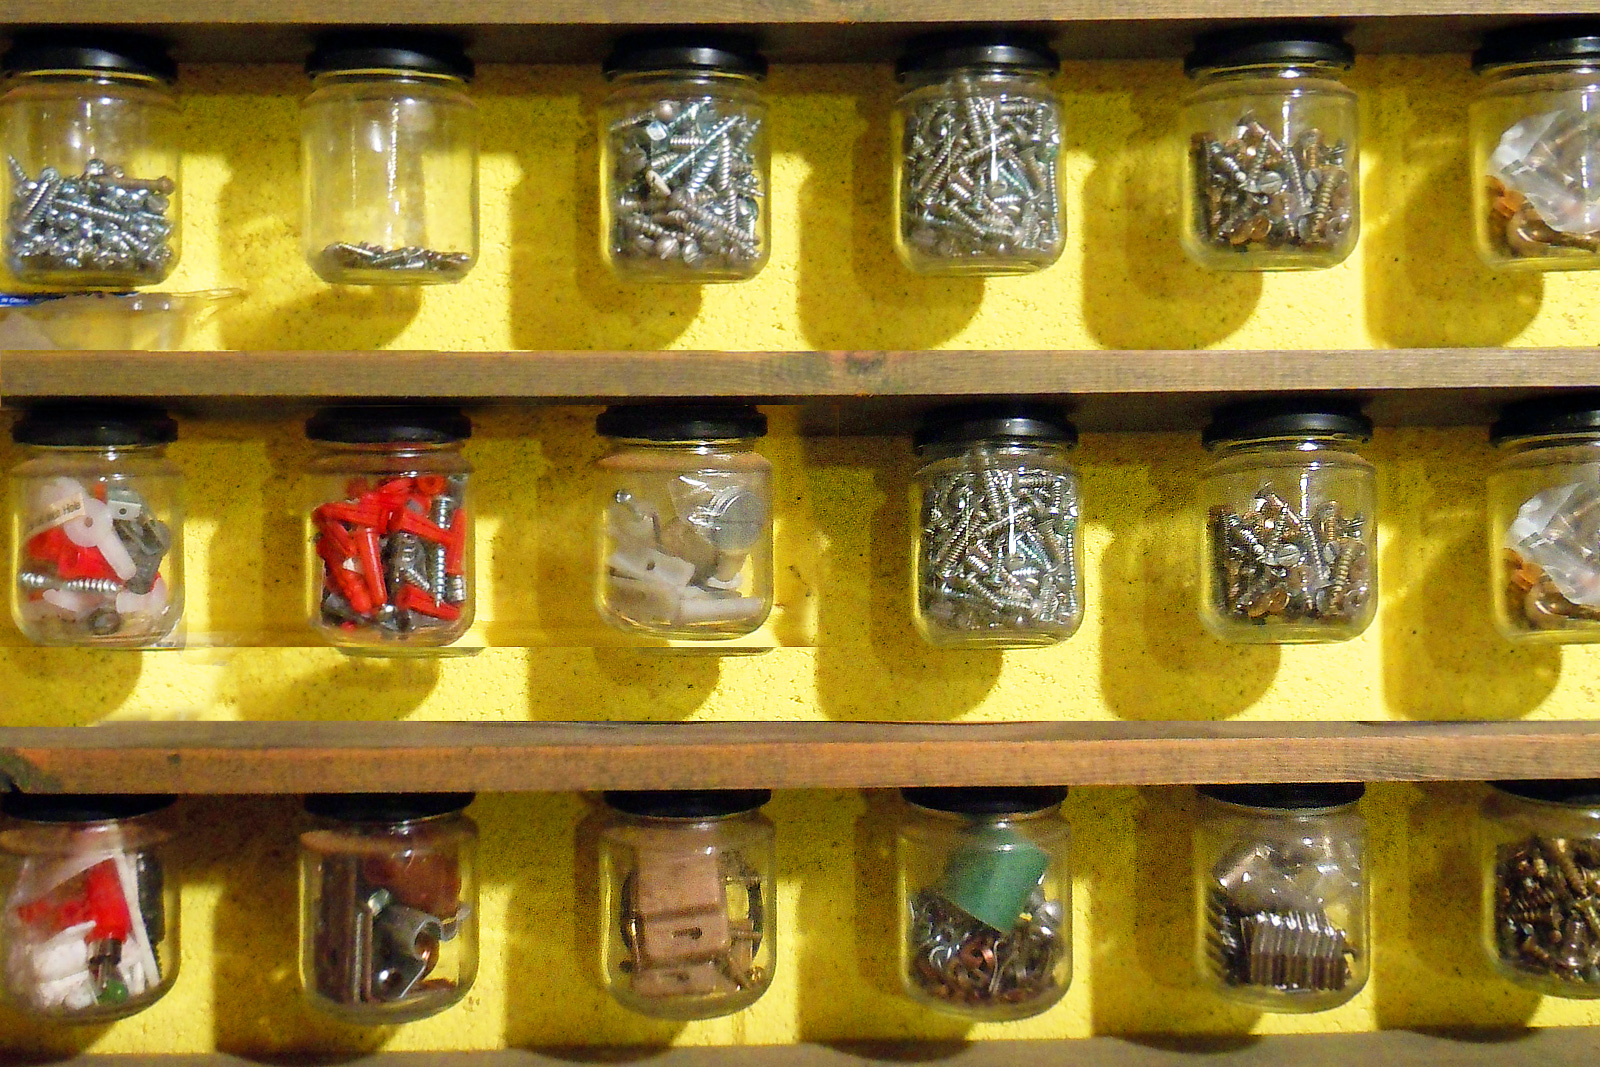 Garage organization with recycled baby food jars